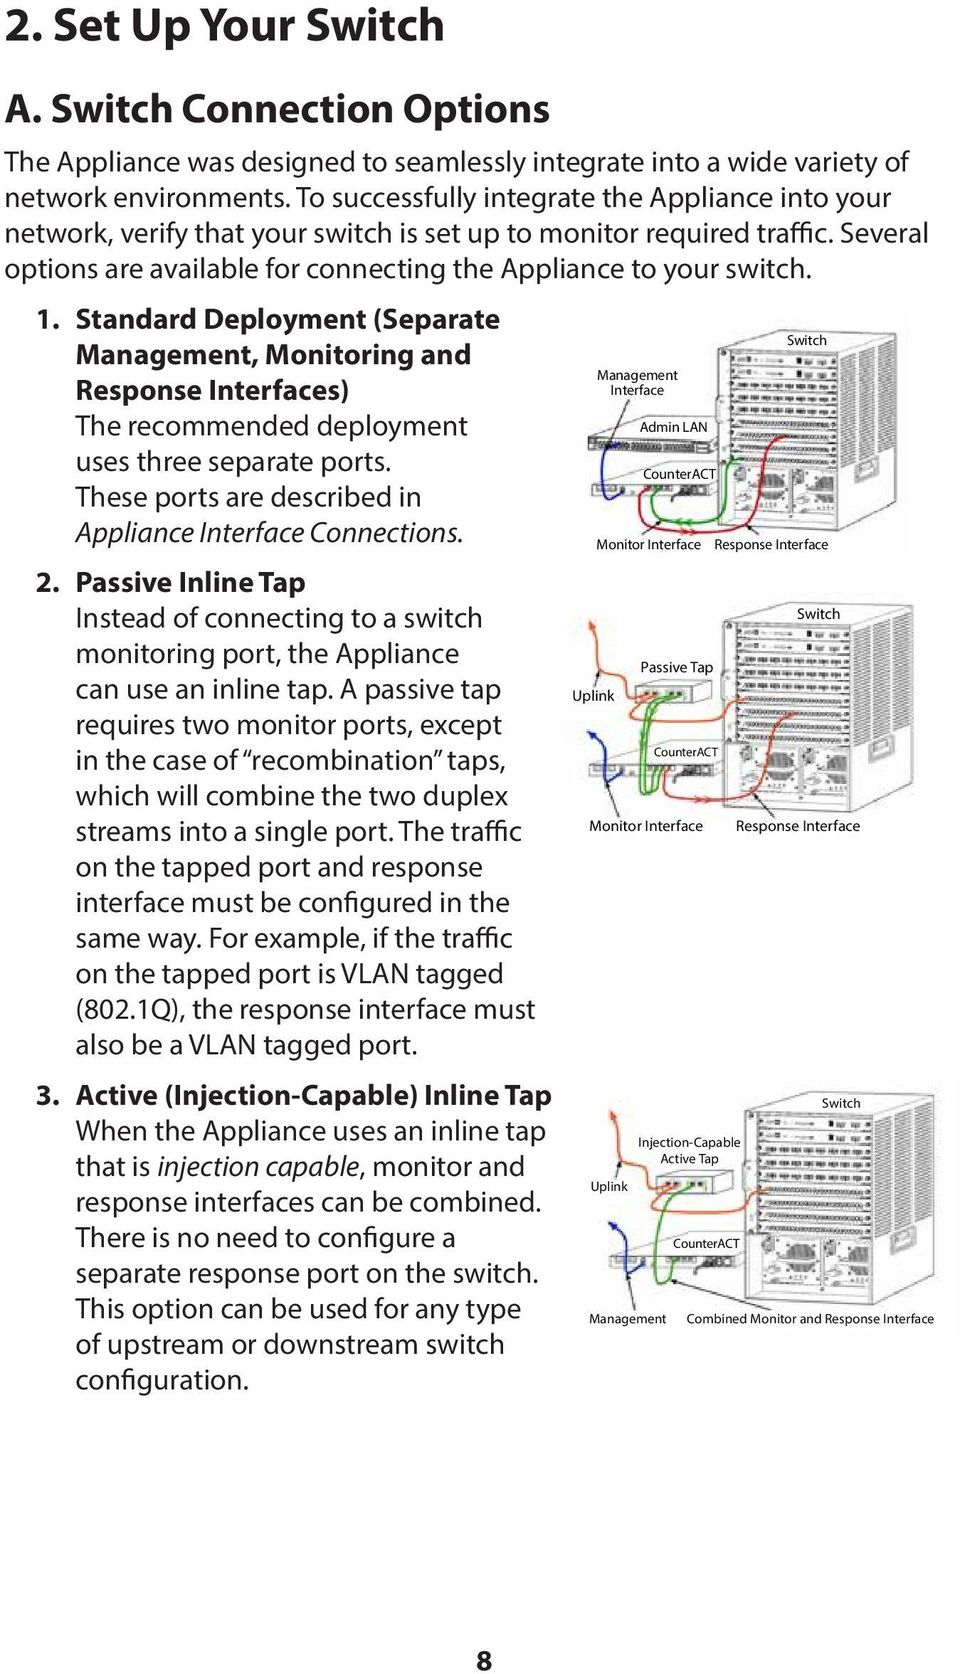 Standard Deployment (Separate Management, Monitoring and Response Interfaces) The recommended deployment uses three separate ports. These ports are described in Appliance Interface Connections. 2.